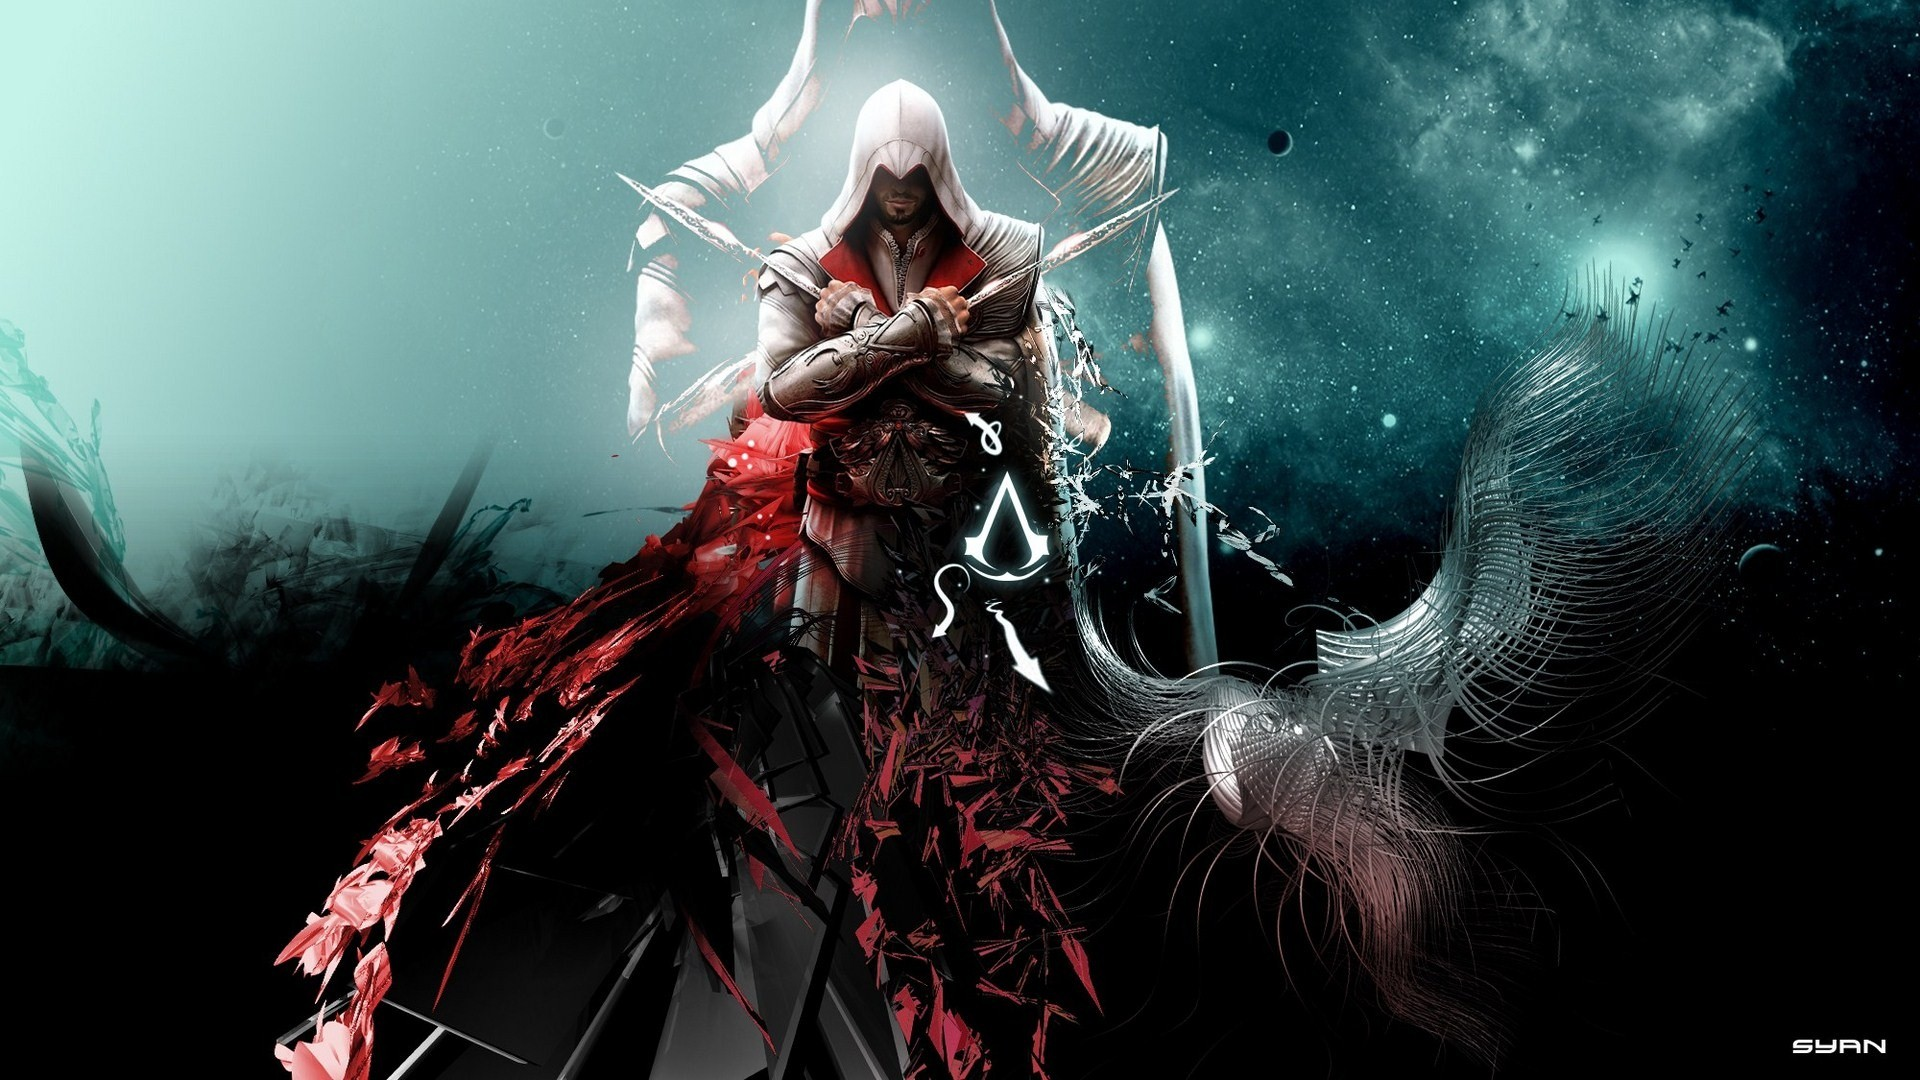 Assassin's Creed: Revelations HD wallpapers #13 – 1920×1080.